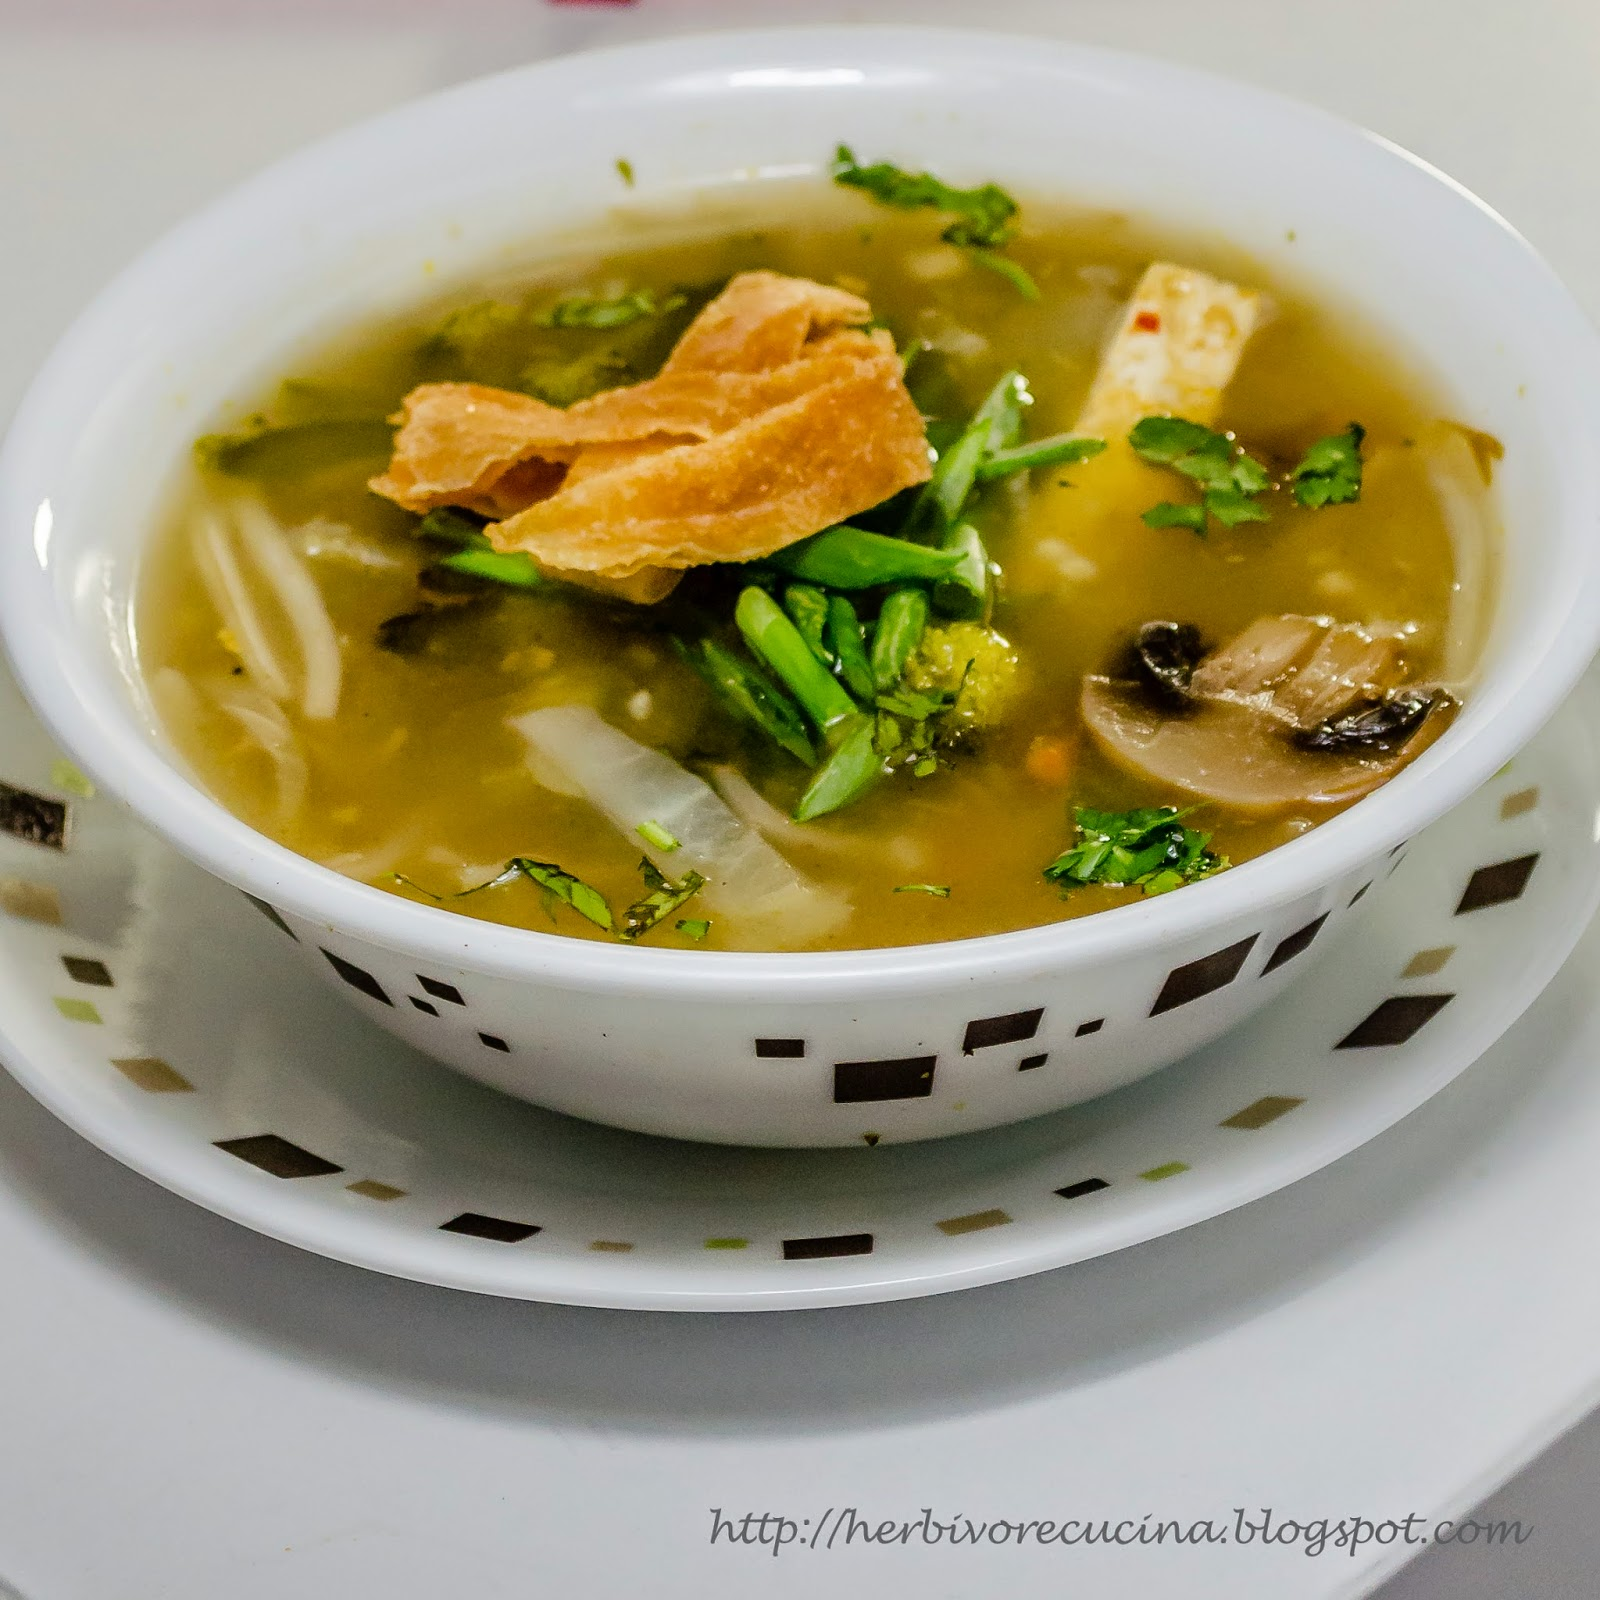 Herbivore Cucina: Asian Ginger Broth